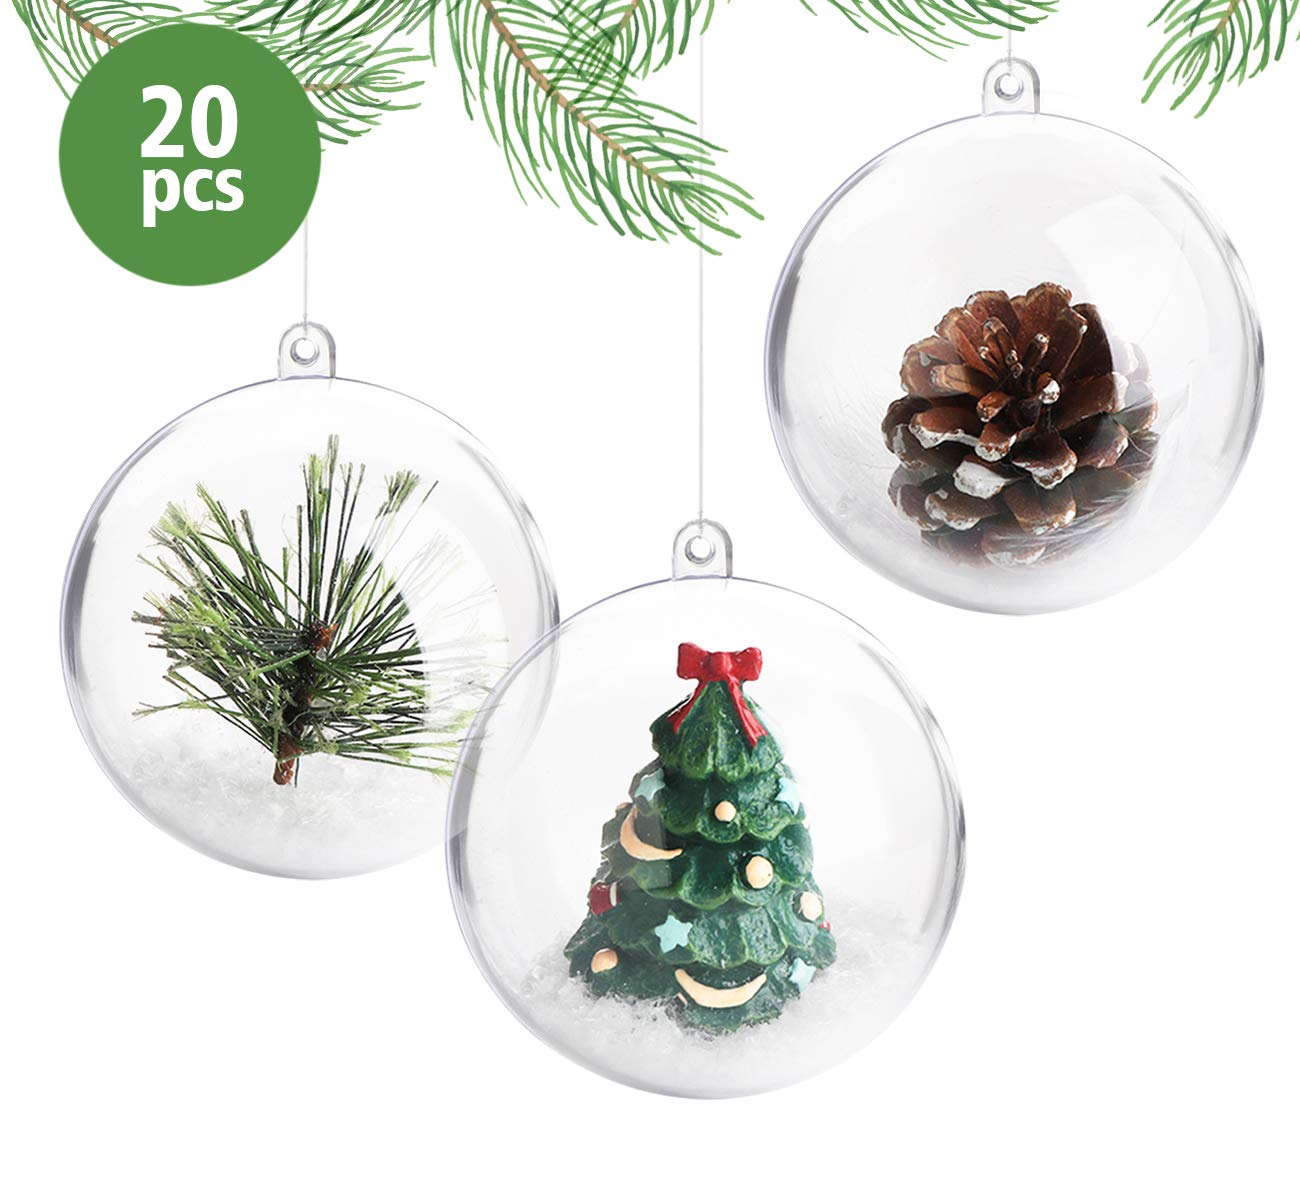 Gluckliy 5pcs Heart Shape Plastic Transparent Fillable Ball Christmas Bauble Ornaments Candy Box Christmas Tree Decoration Wedding Party Home Decor DIY Gift 80mm